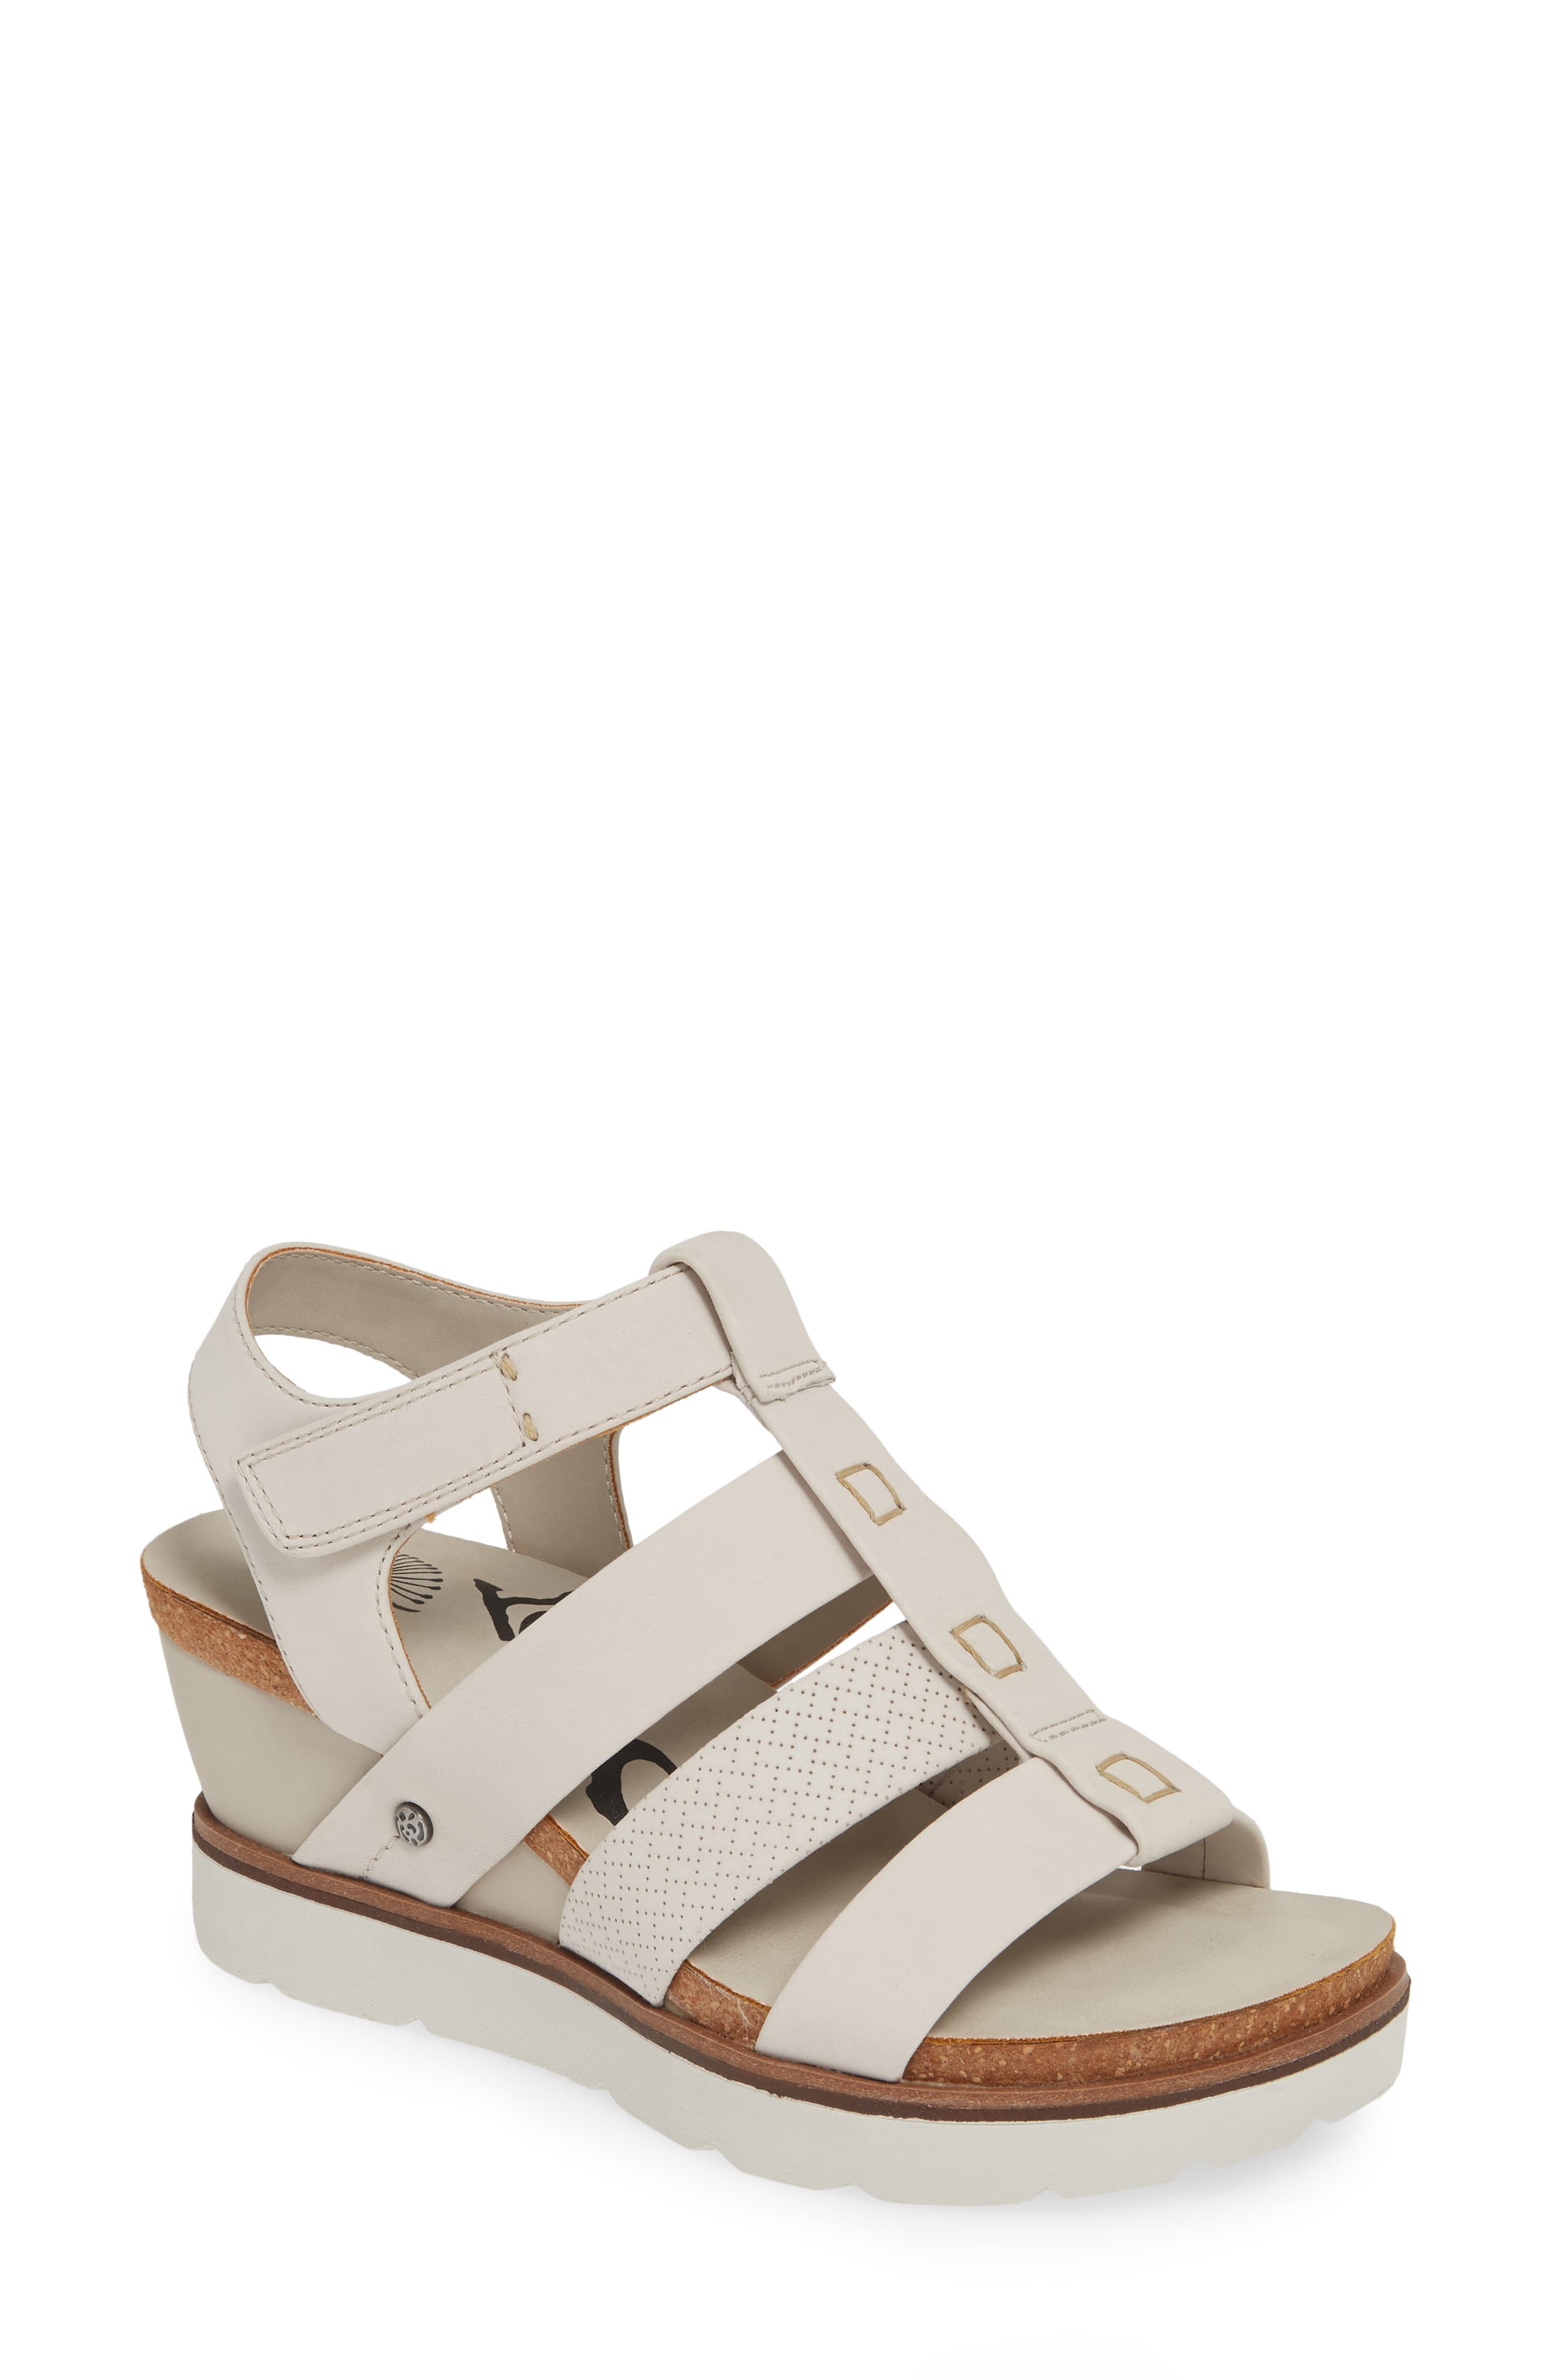 0a01b5a41a Women's Otbt New Moon Wedge Sandal, Size 5.5 M - Grey in 2019 ...